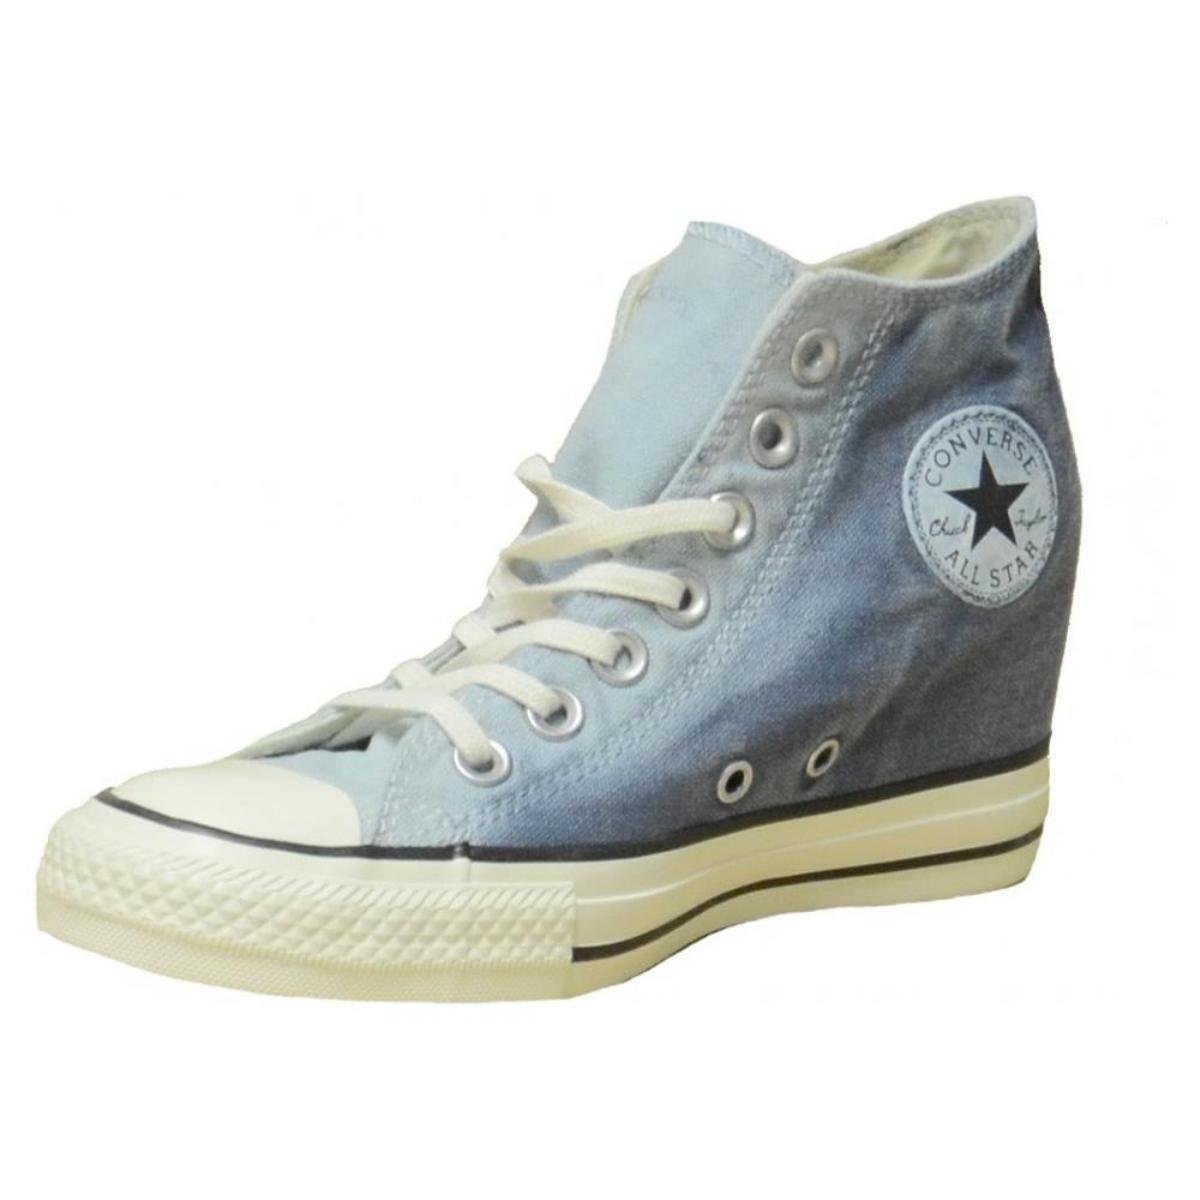 2converse all star zeppa interna donna